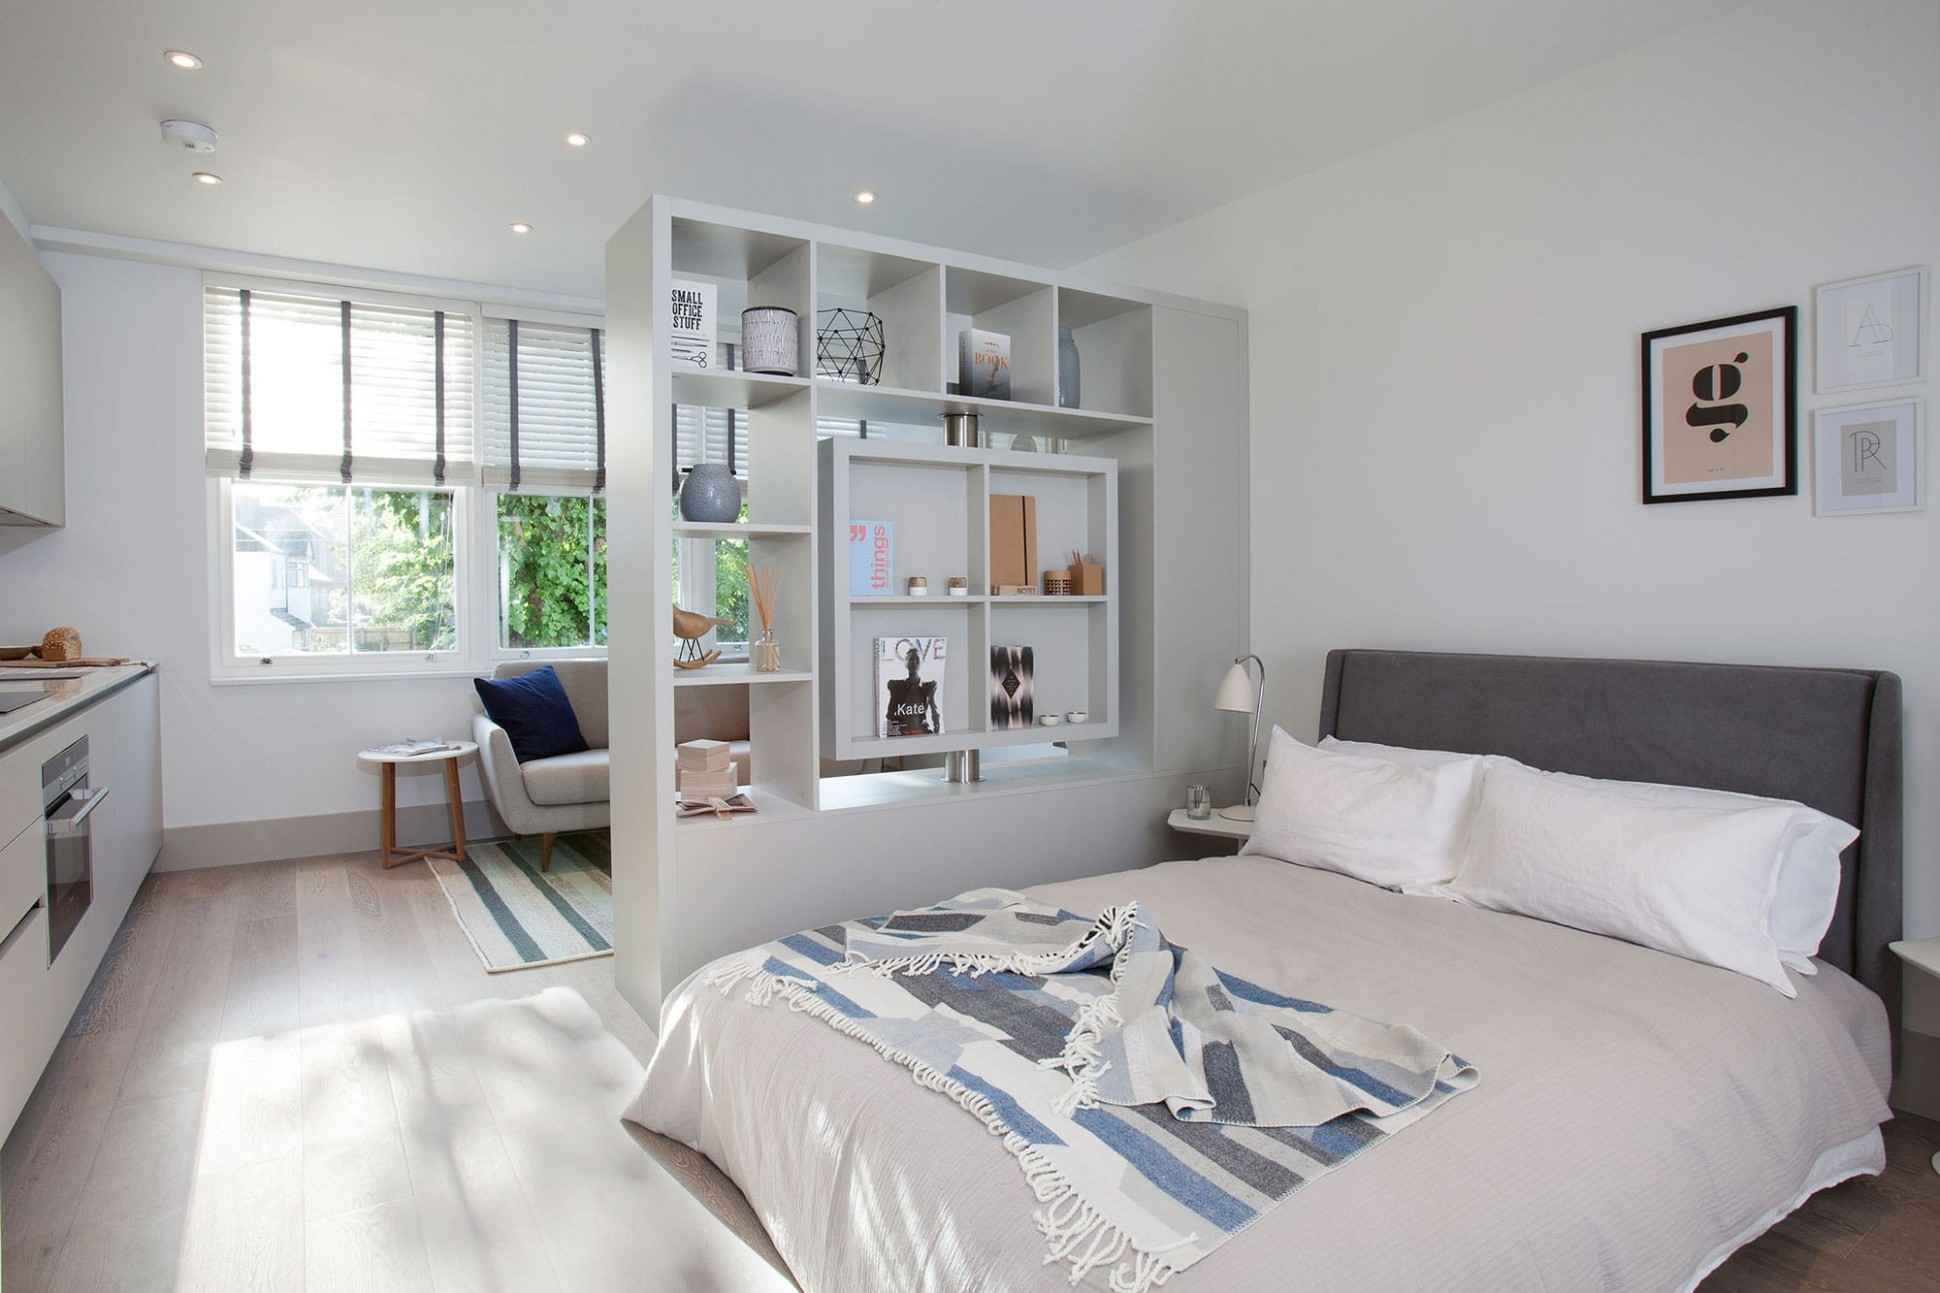 Small Bedroom Design Ideas to Make the Most of Your Space - Bedroom Ideas Hdb